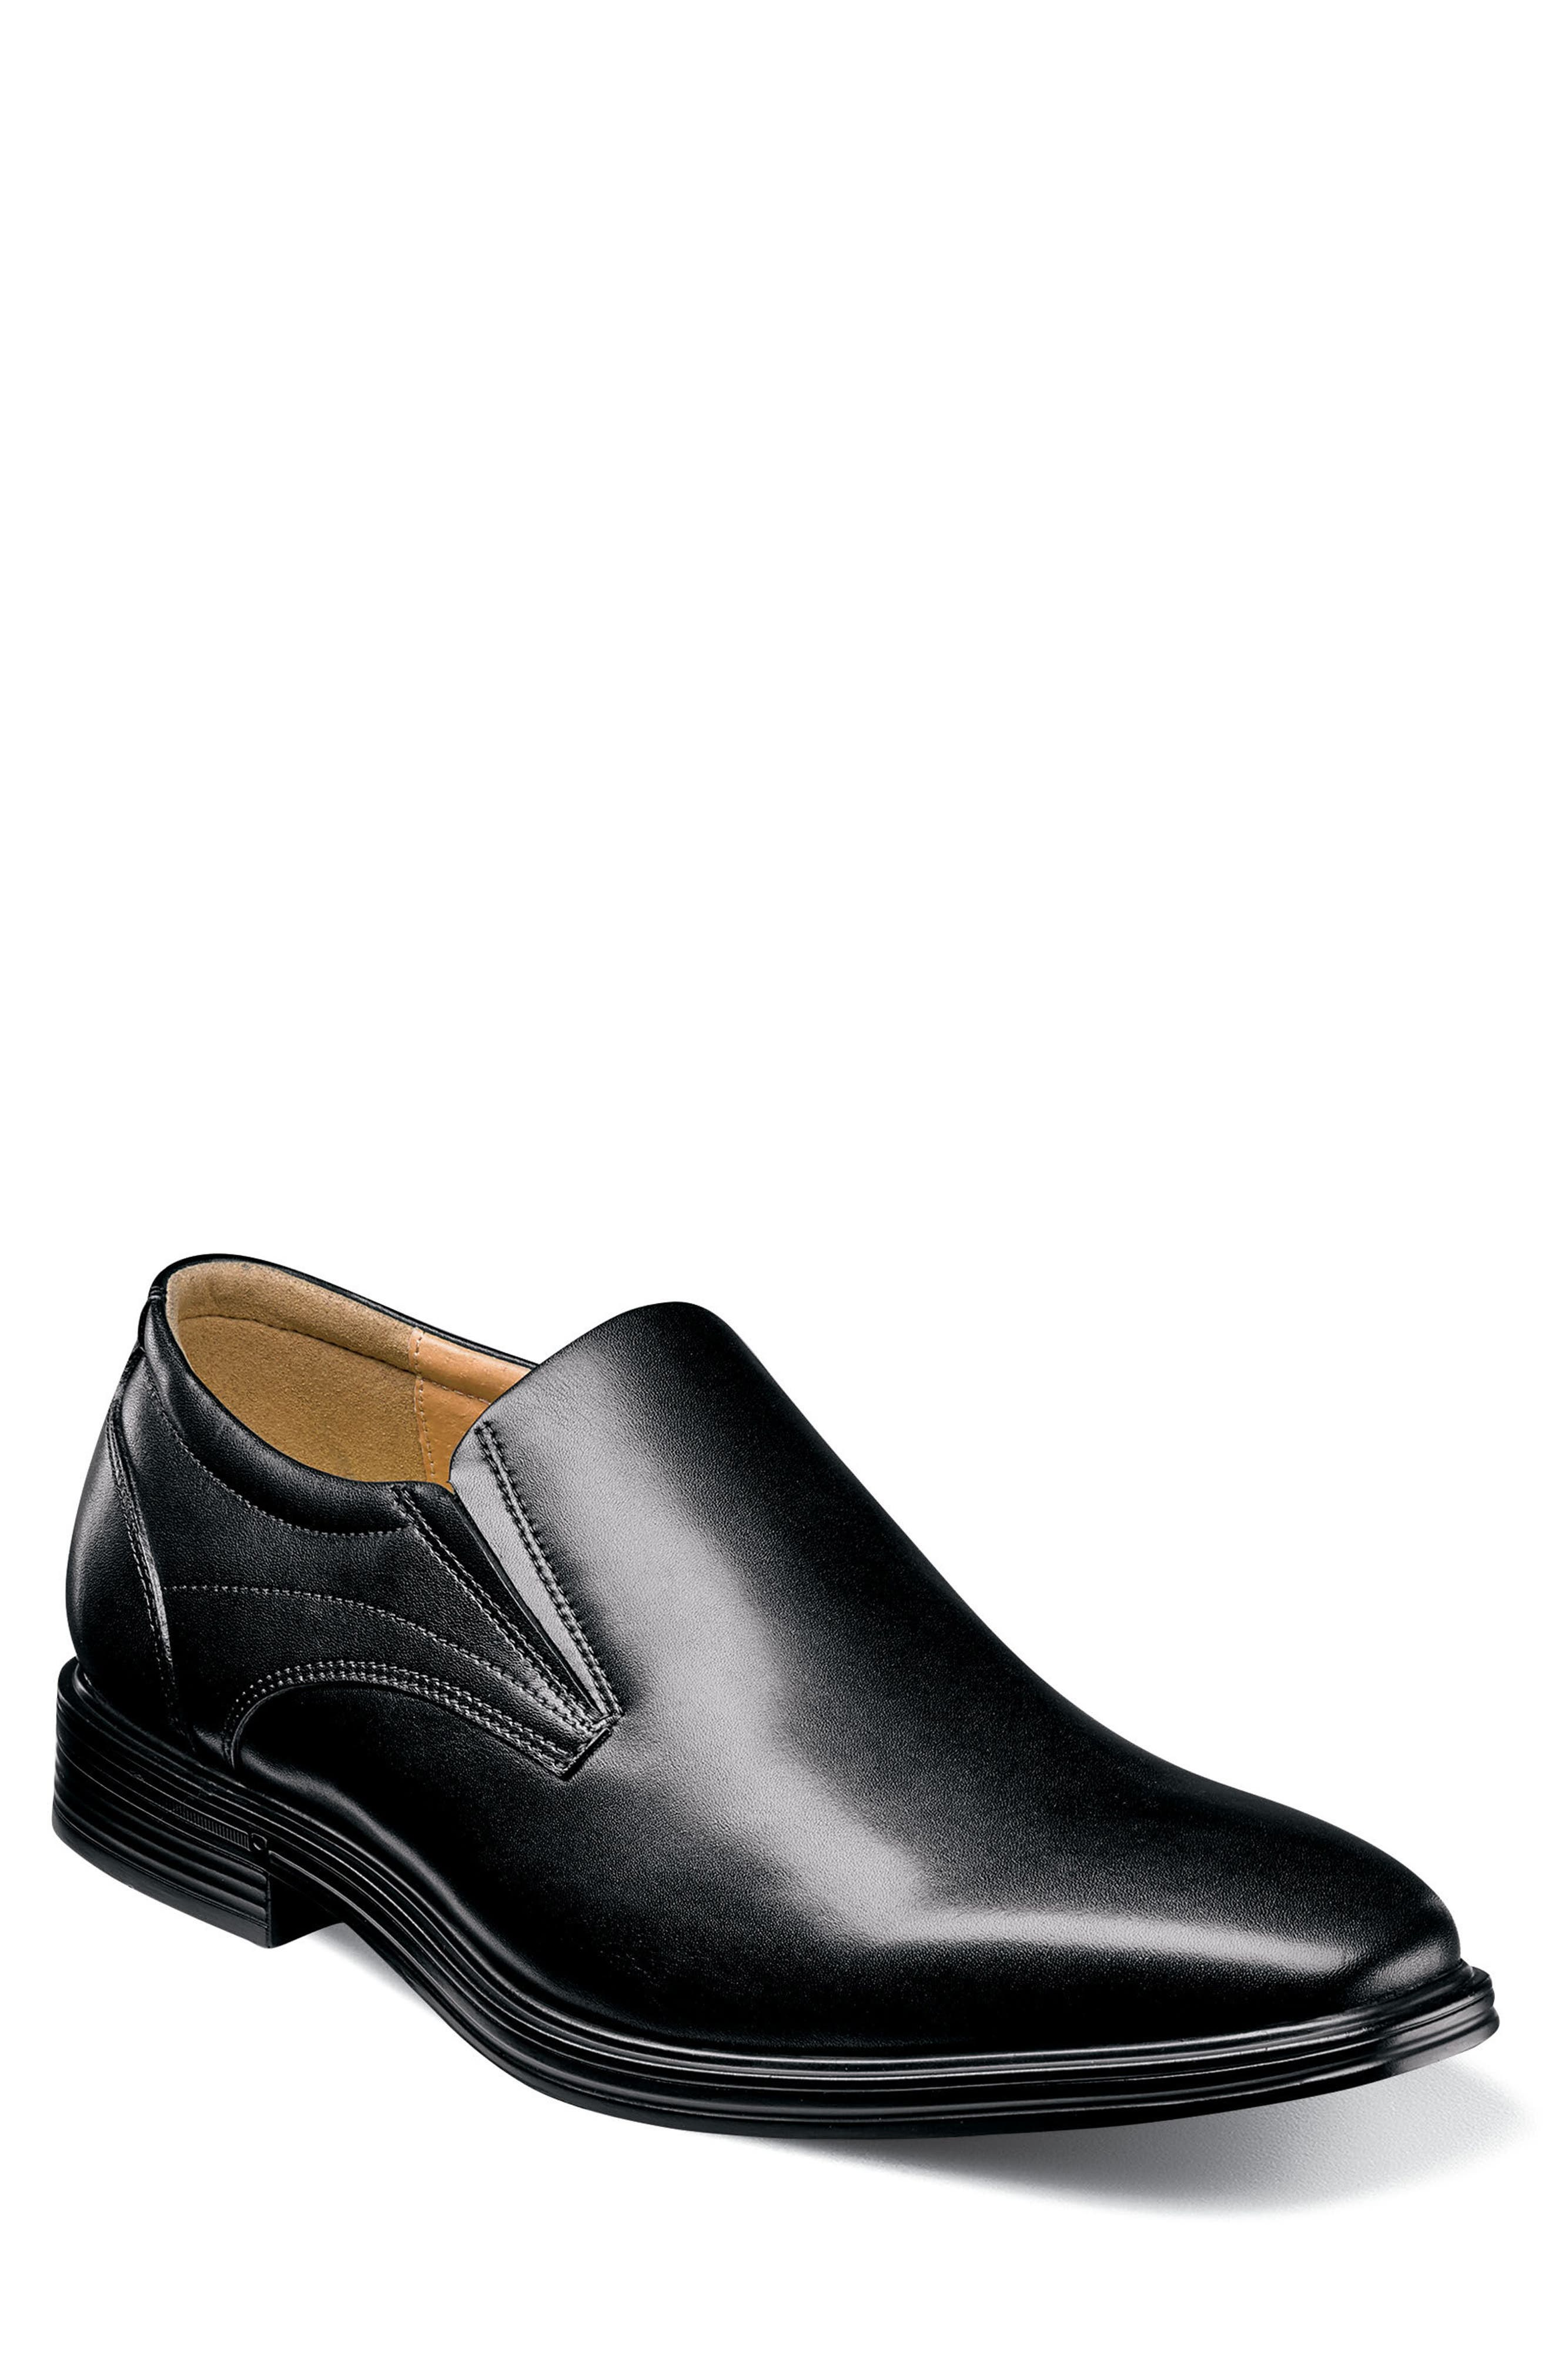 Heights Venetian Loafer,                         Main,                         color, Black